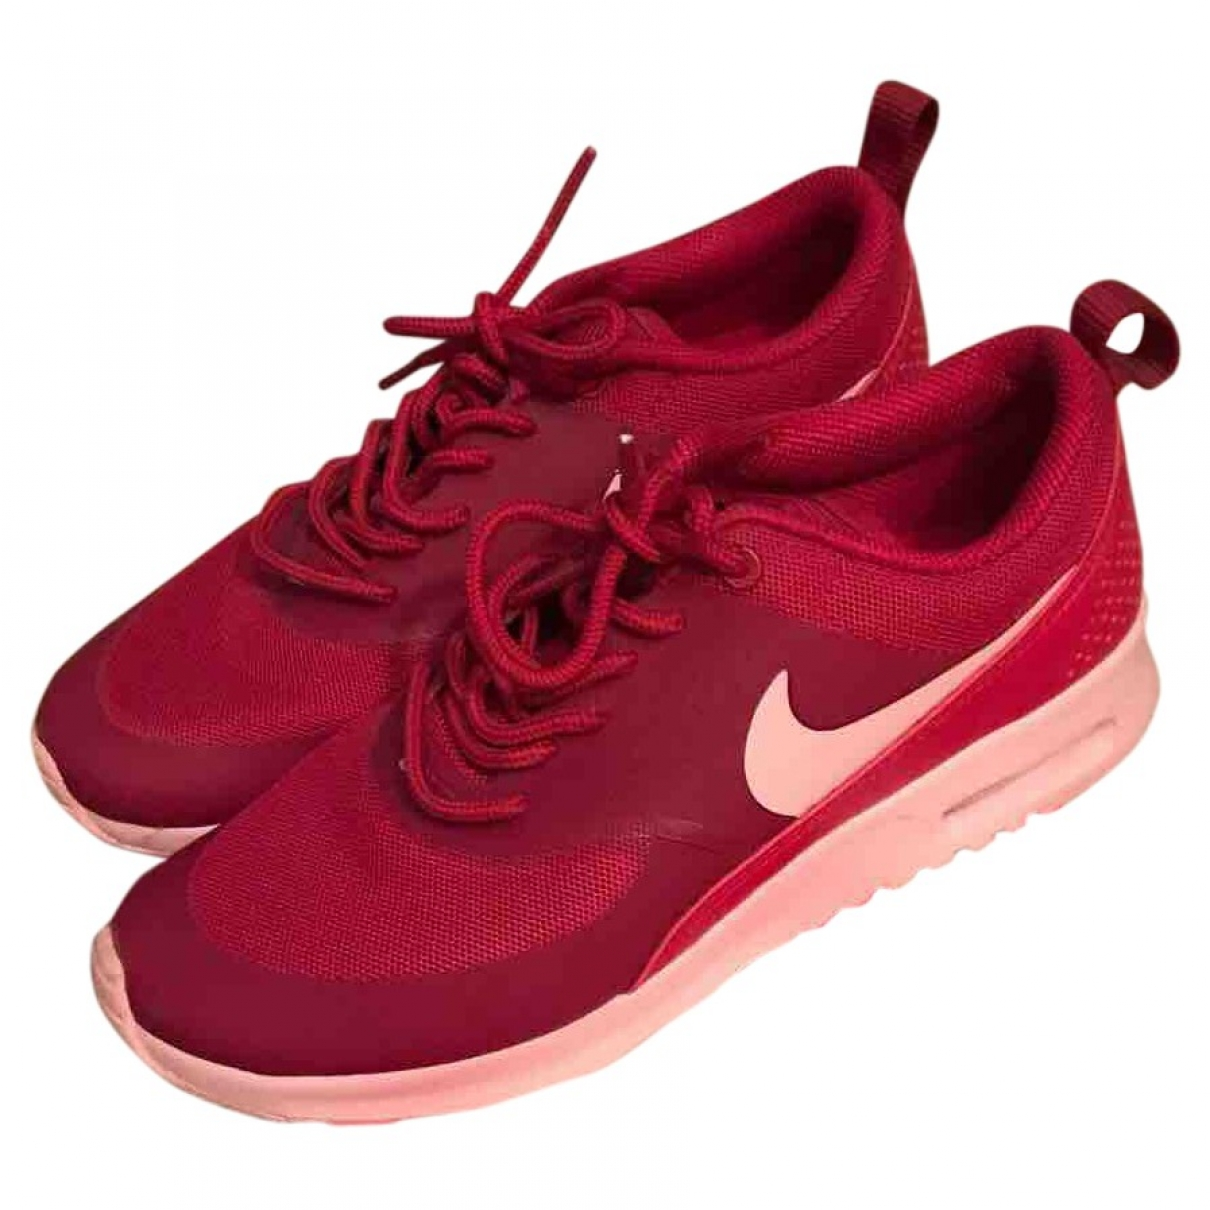 Nike Air Max  Pink Cloth Trainers for Women 37.5 EU